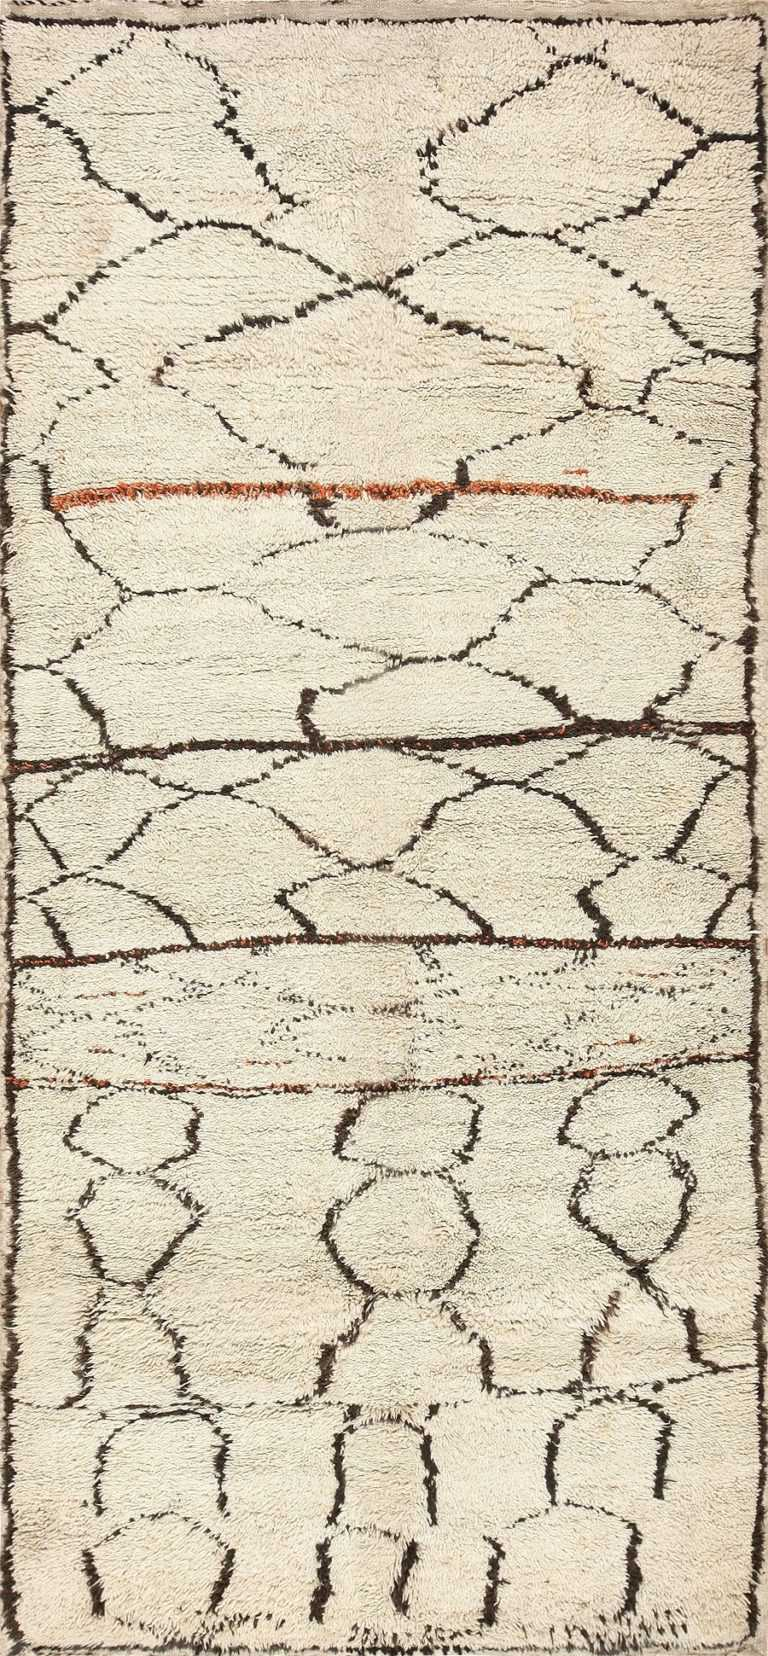 Ivory and Black Beni Ourain Moroccan Rug 47927 Detail/Large View